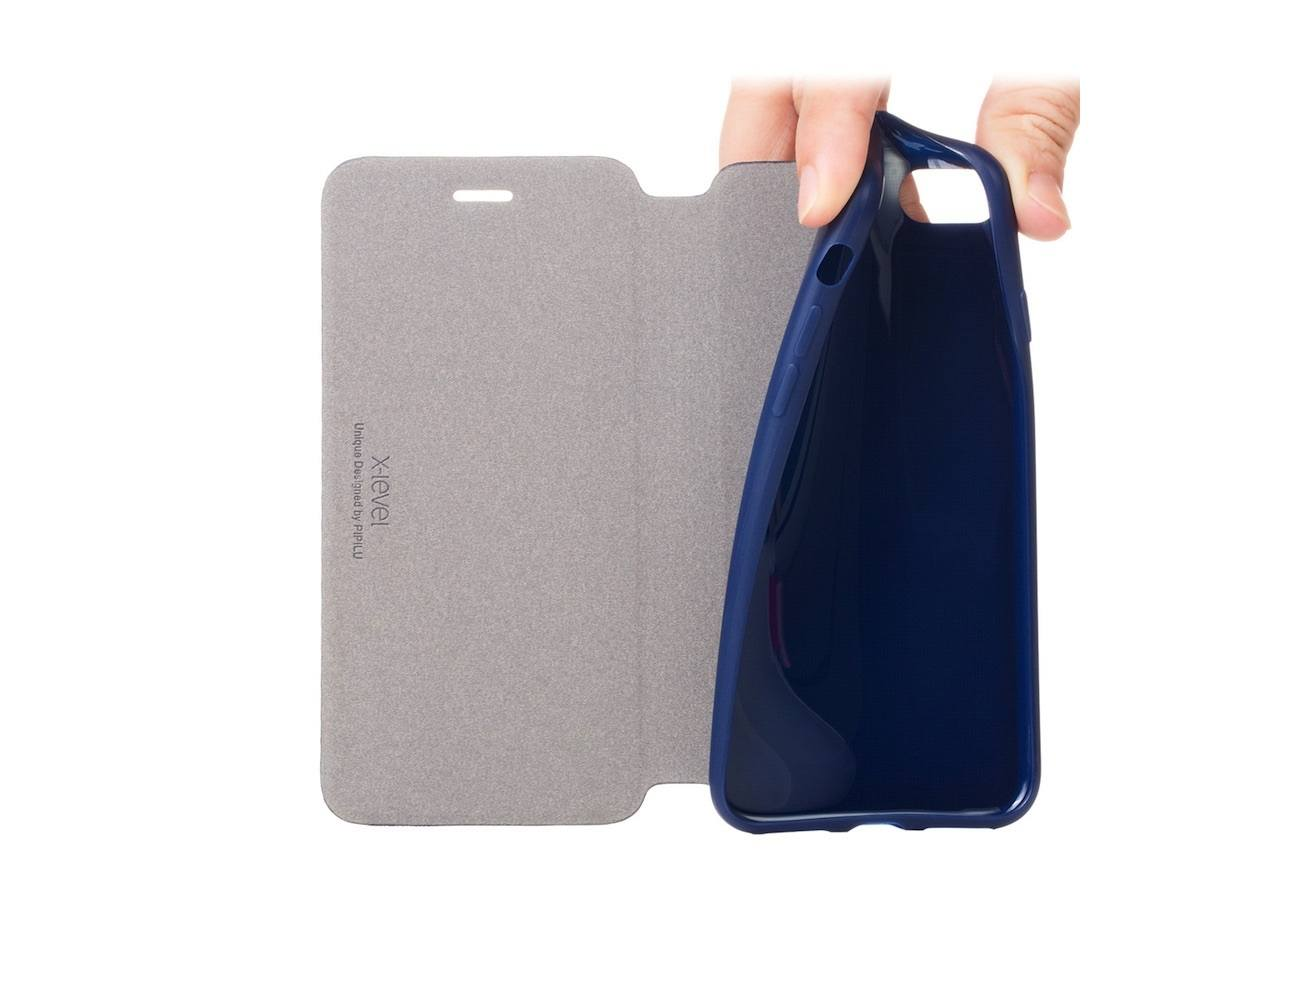 Leather iPhone 7 Flip Cover